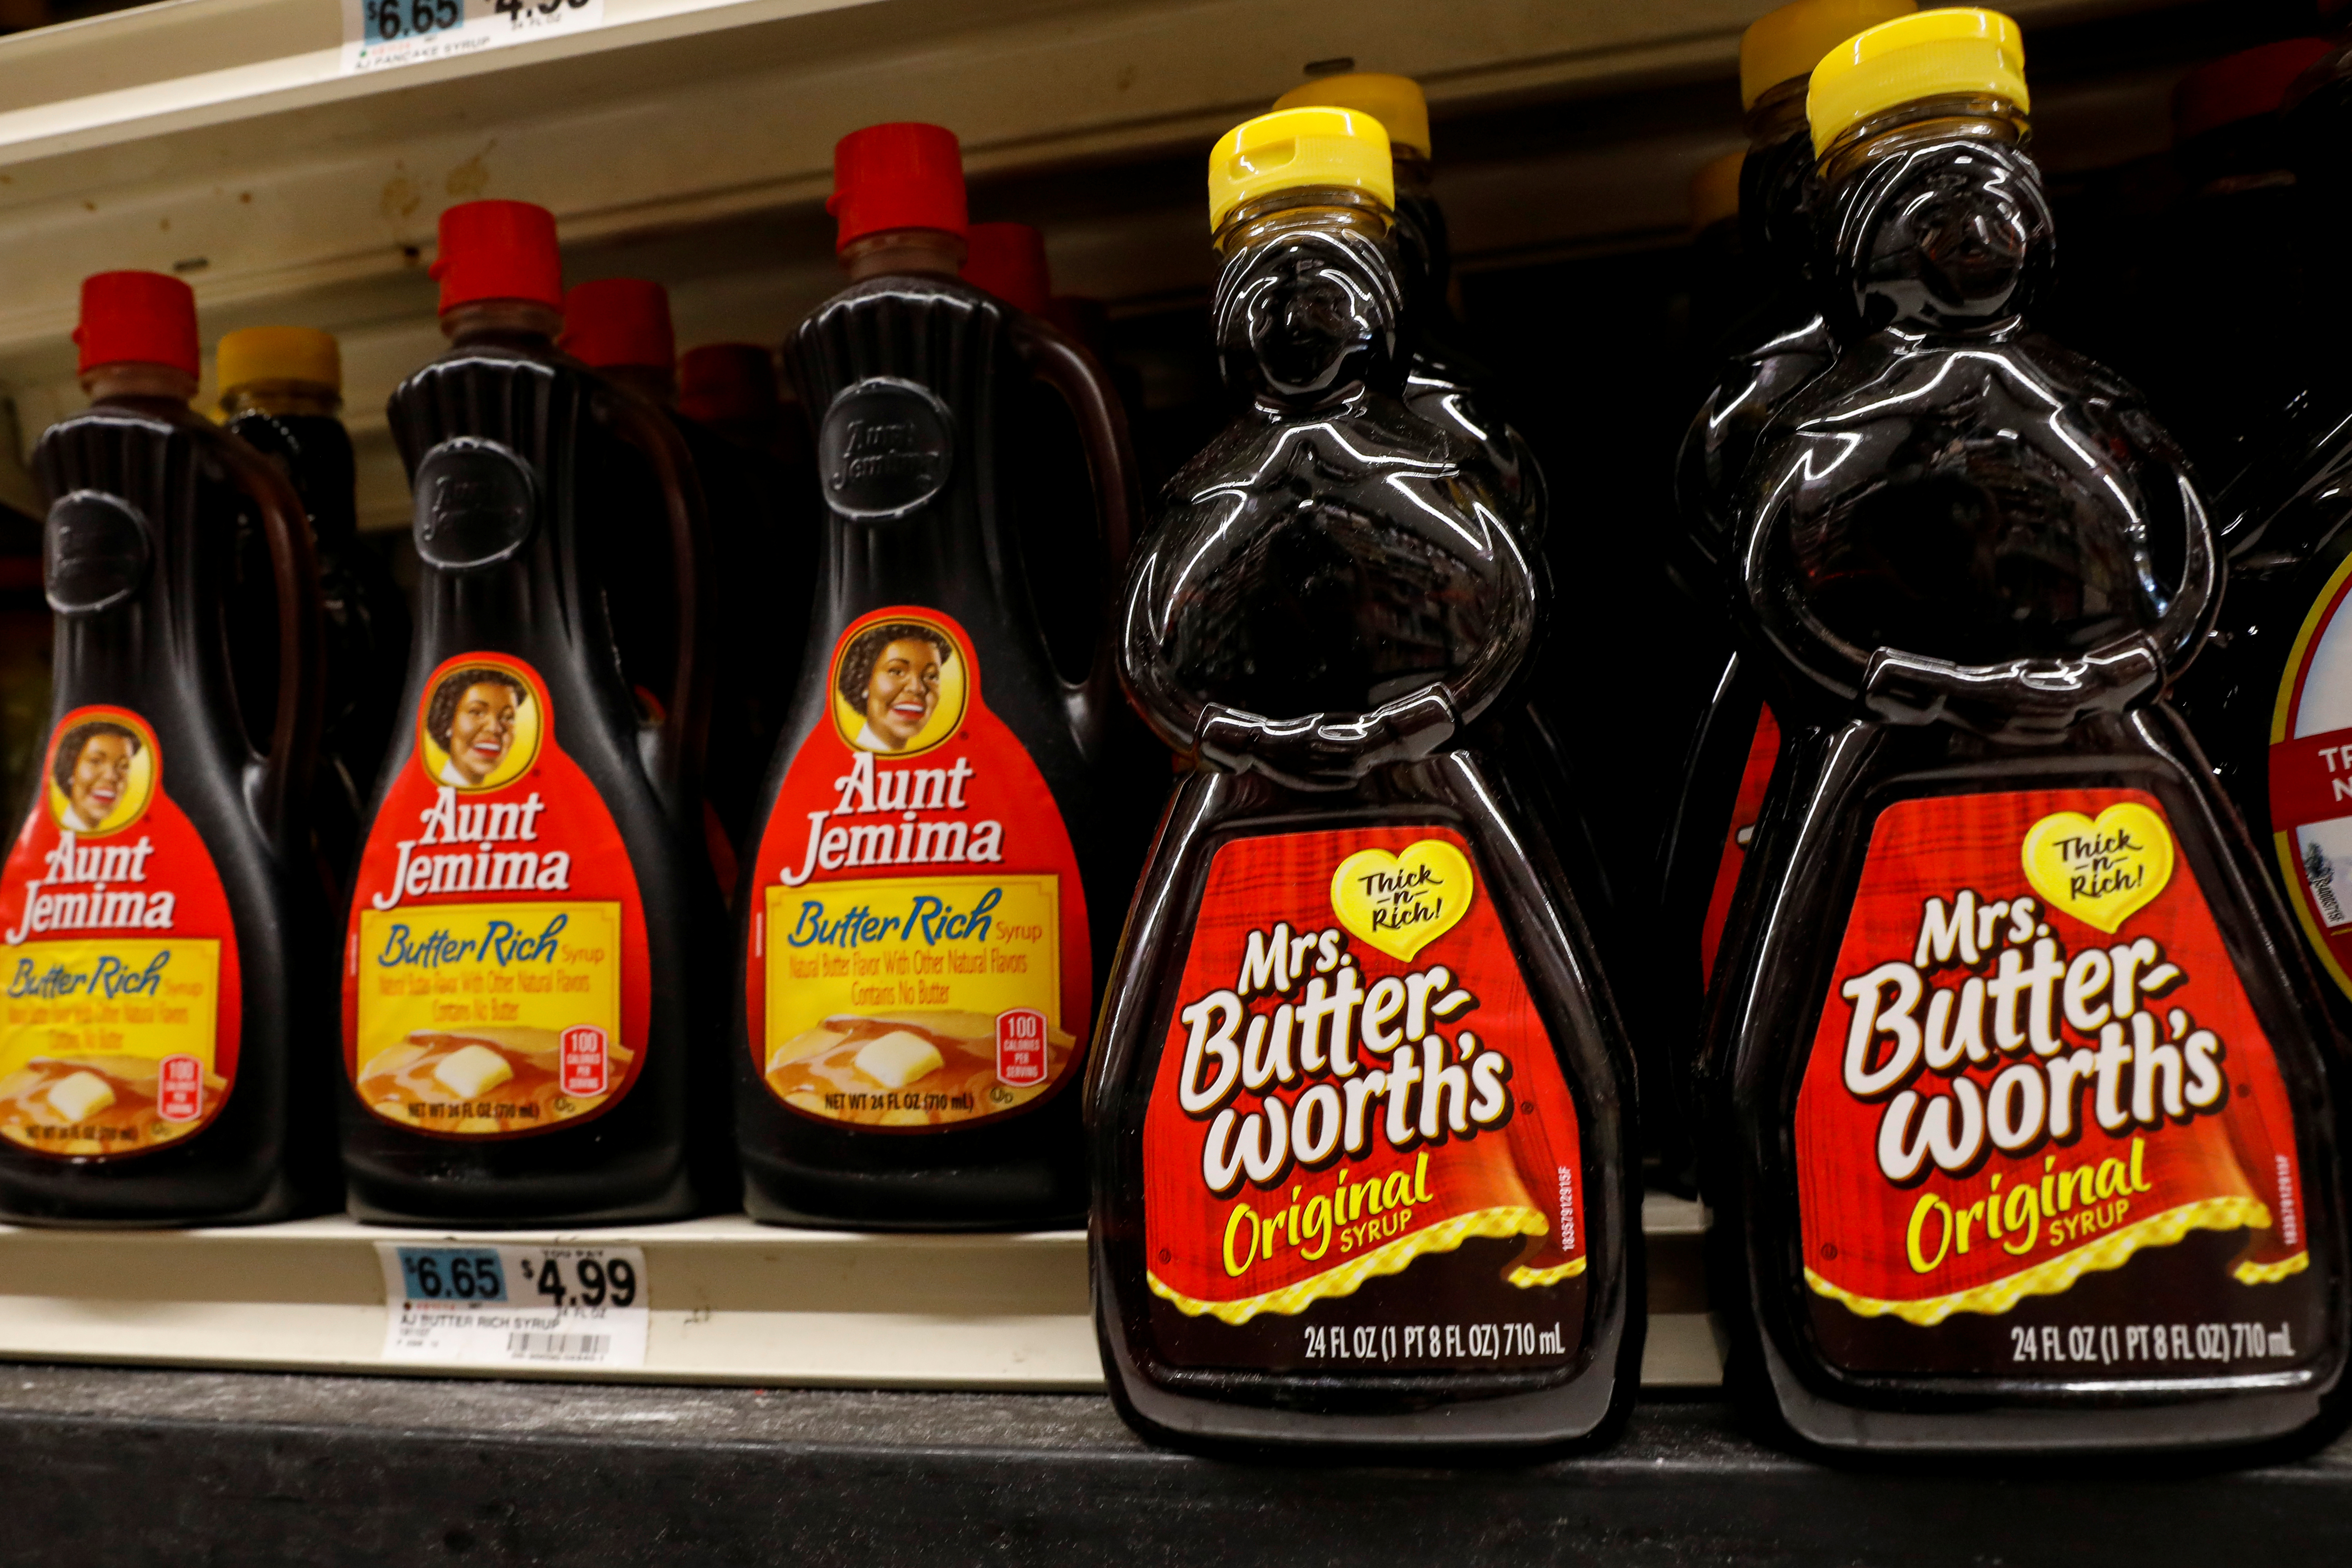 Bottles of ConAgra Brands Inc. Mrs. Butter-Worth's branded syrup are seen along side Aunt Jemima branded syrup on a store shelf in the Brooklyn borough of New York City, New York, U.S., June 17, 2020. REUTERS/Brendan McDermid